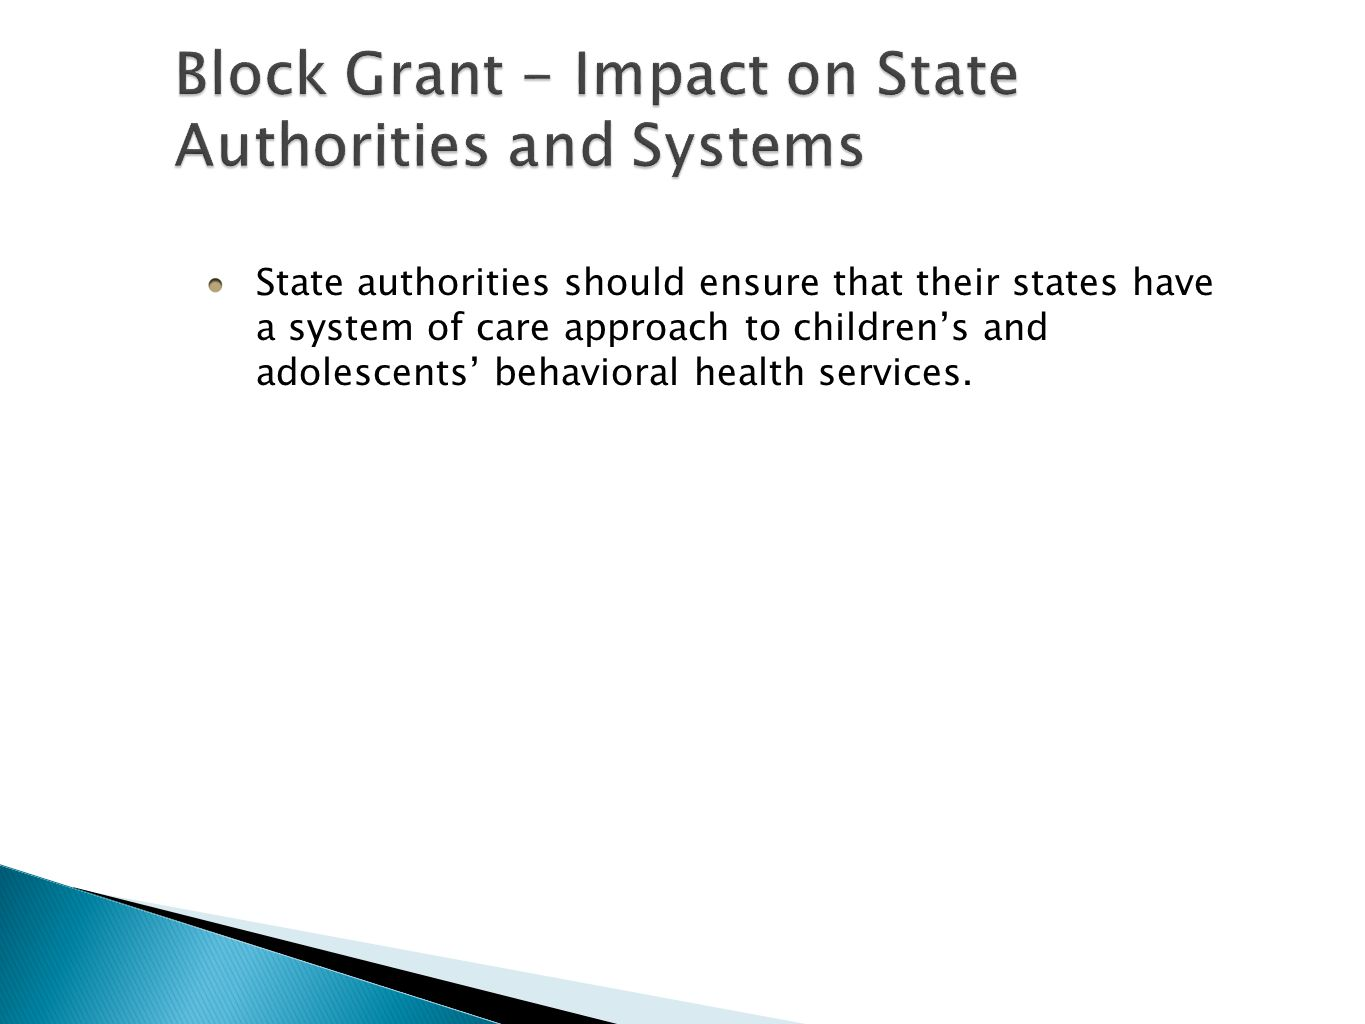 State authorities should ensure that their states have a system of care approach to children's and adolescents' behavioral health services.